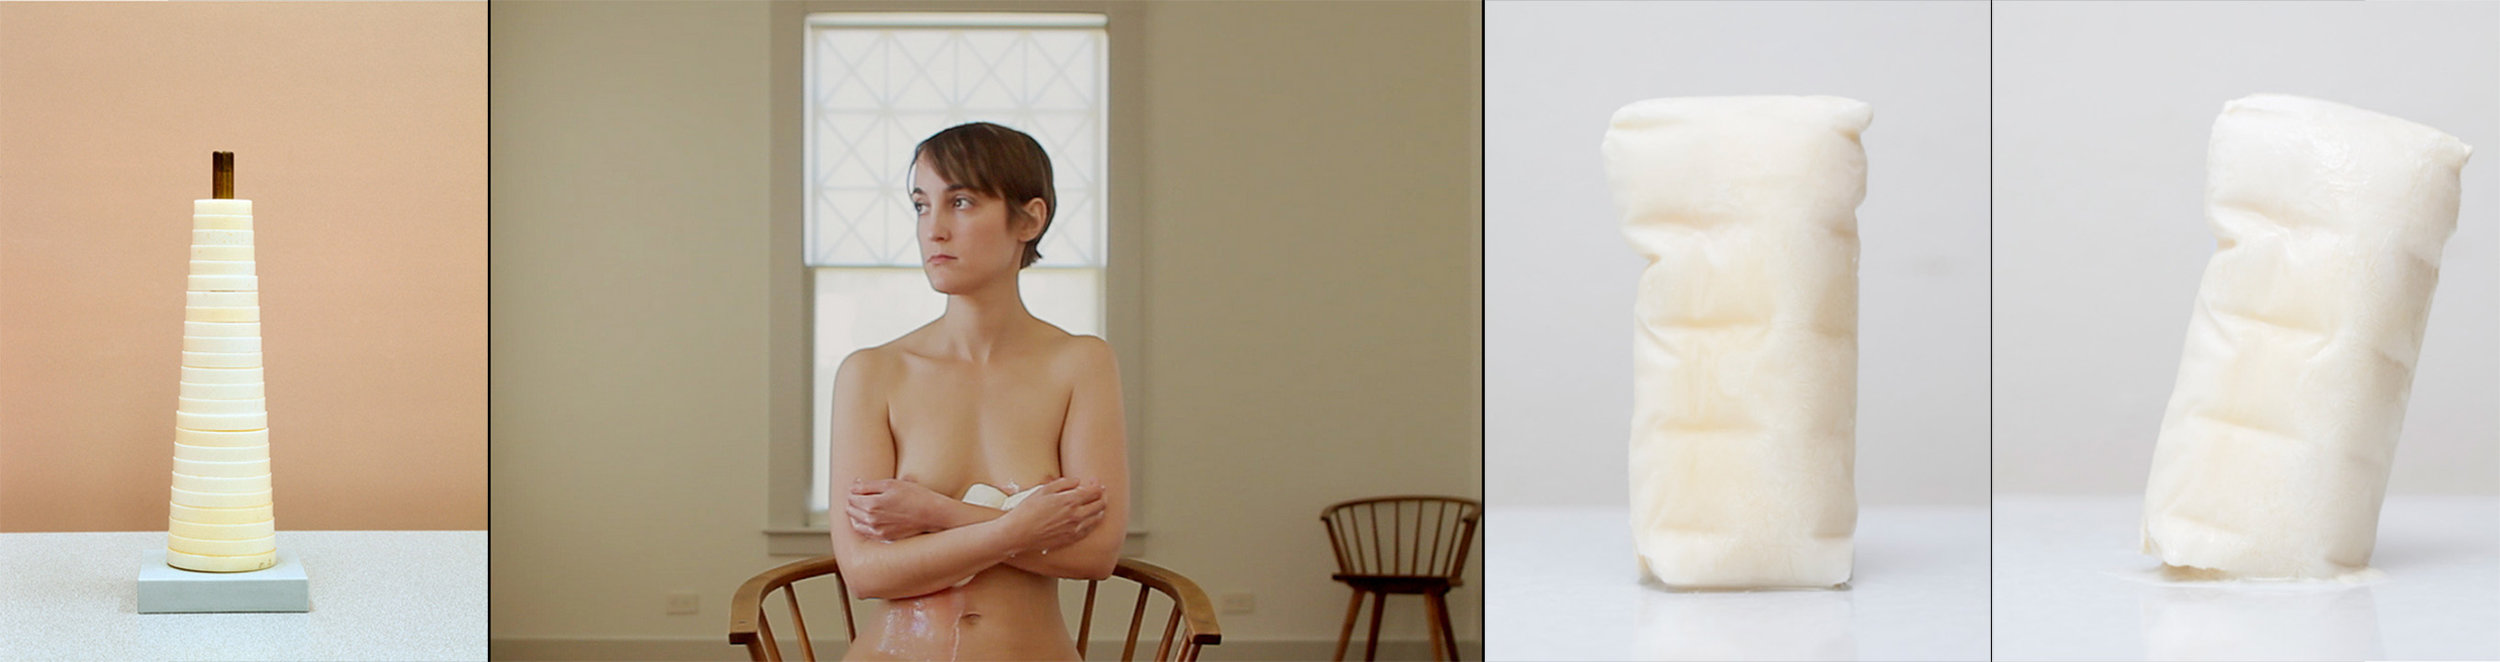 """Sarah Sudhoff, (L-R): Circular calibration device, 2012, Archival pigment print, 30 x 24""""; Surrender, 2013, video still, 45min performance.; Tipping Point 1.1, 2013, Archival pigment print, 22 x 15""""; Tipping Point 1.14, 2013."""